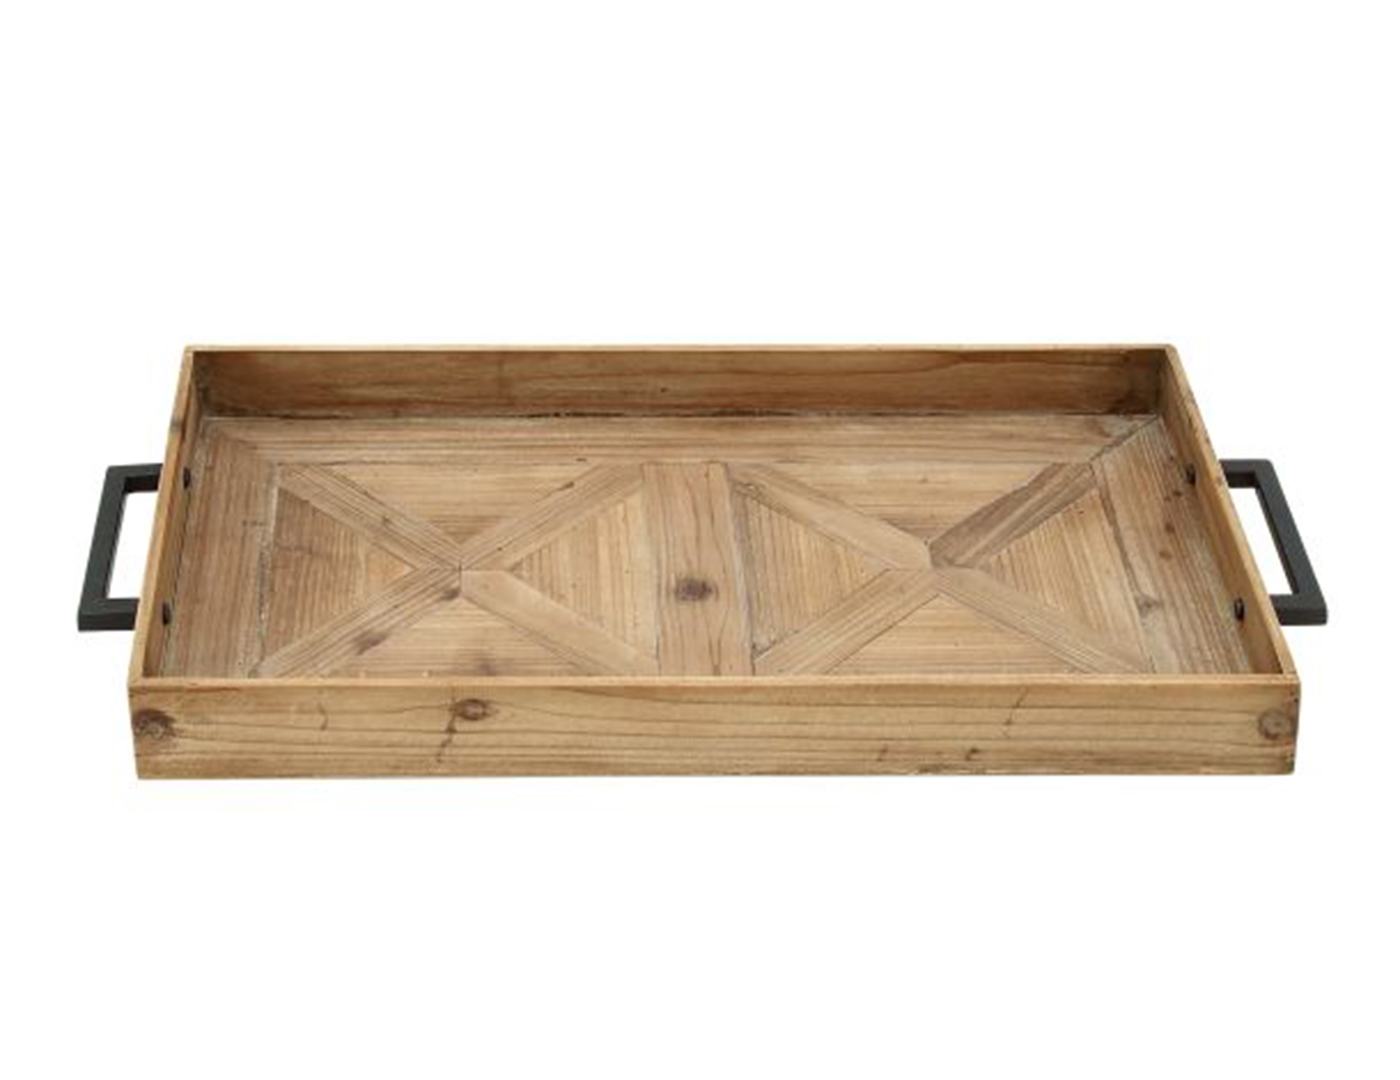 Wood and Metal Barn Door Table Tray 32""